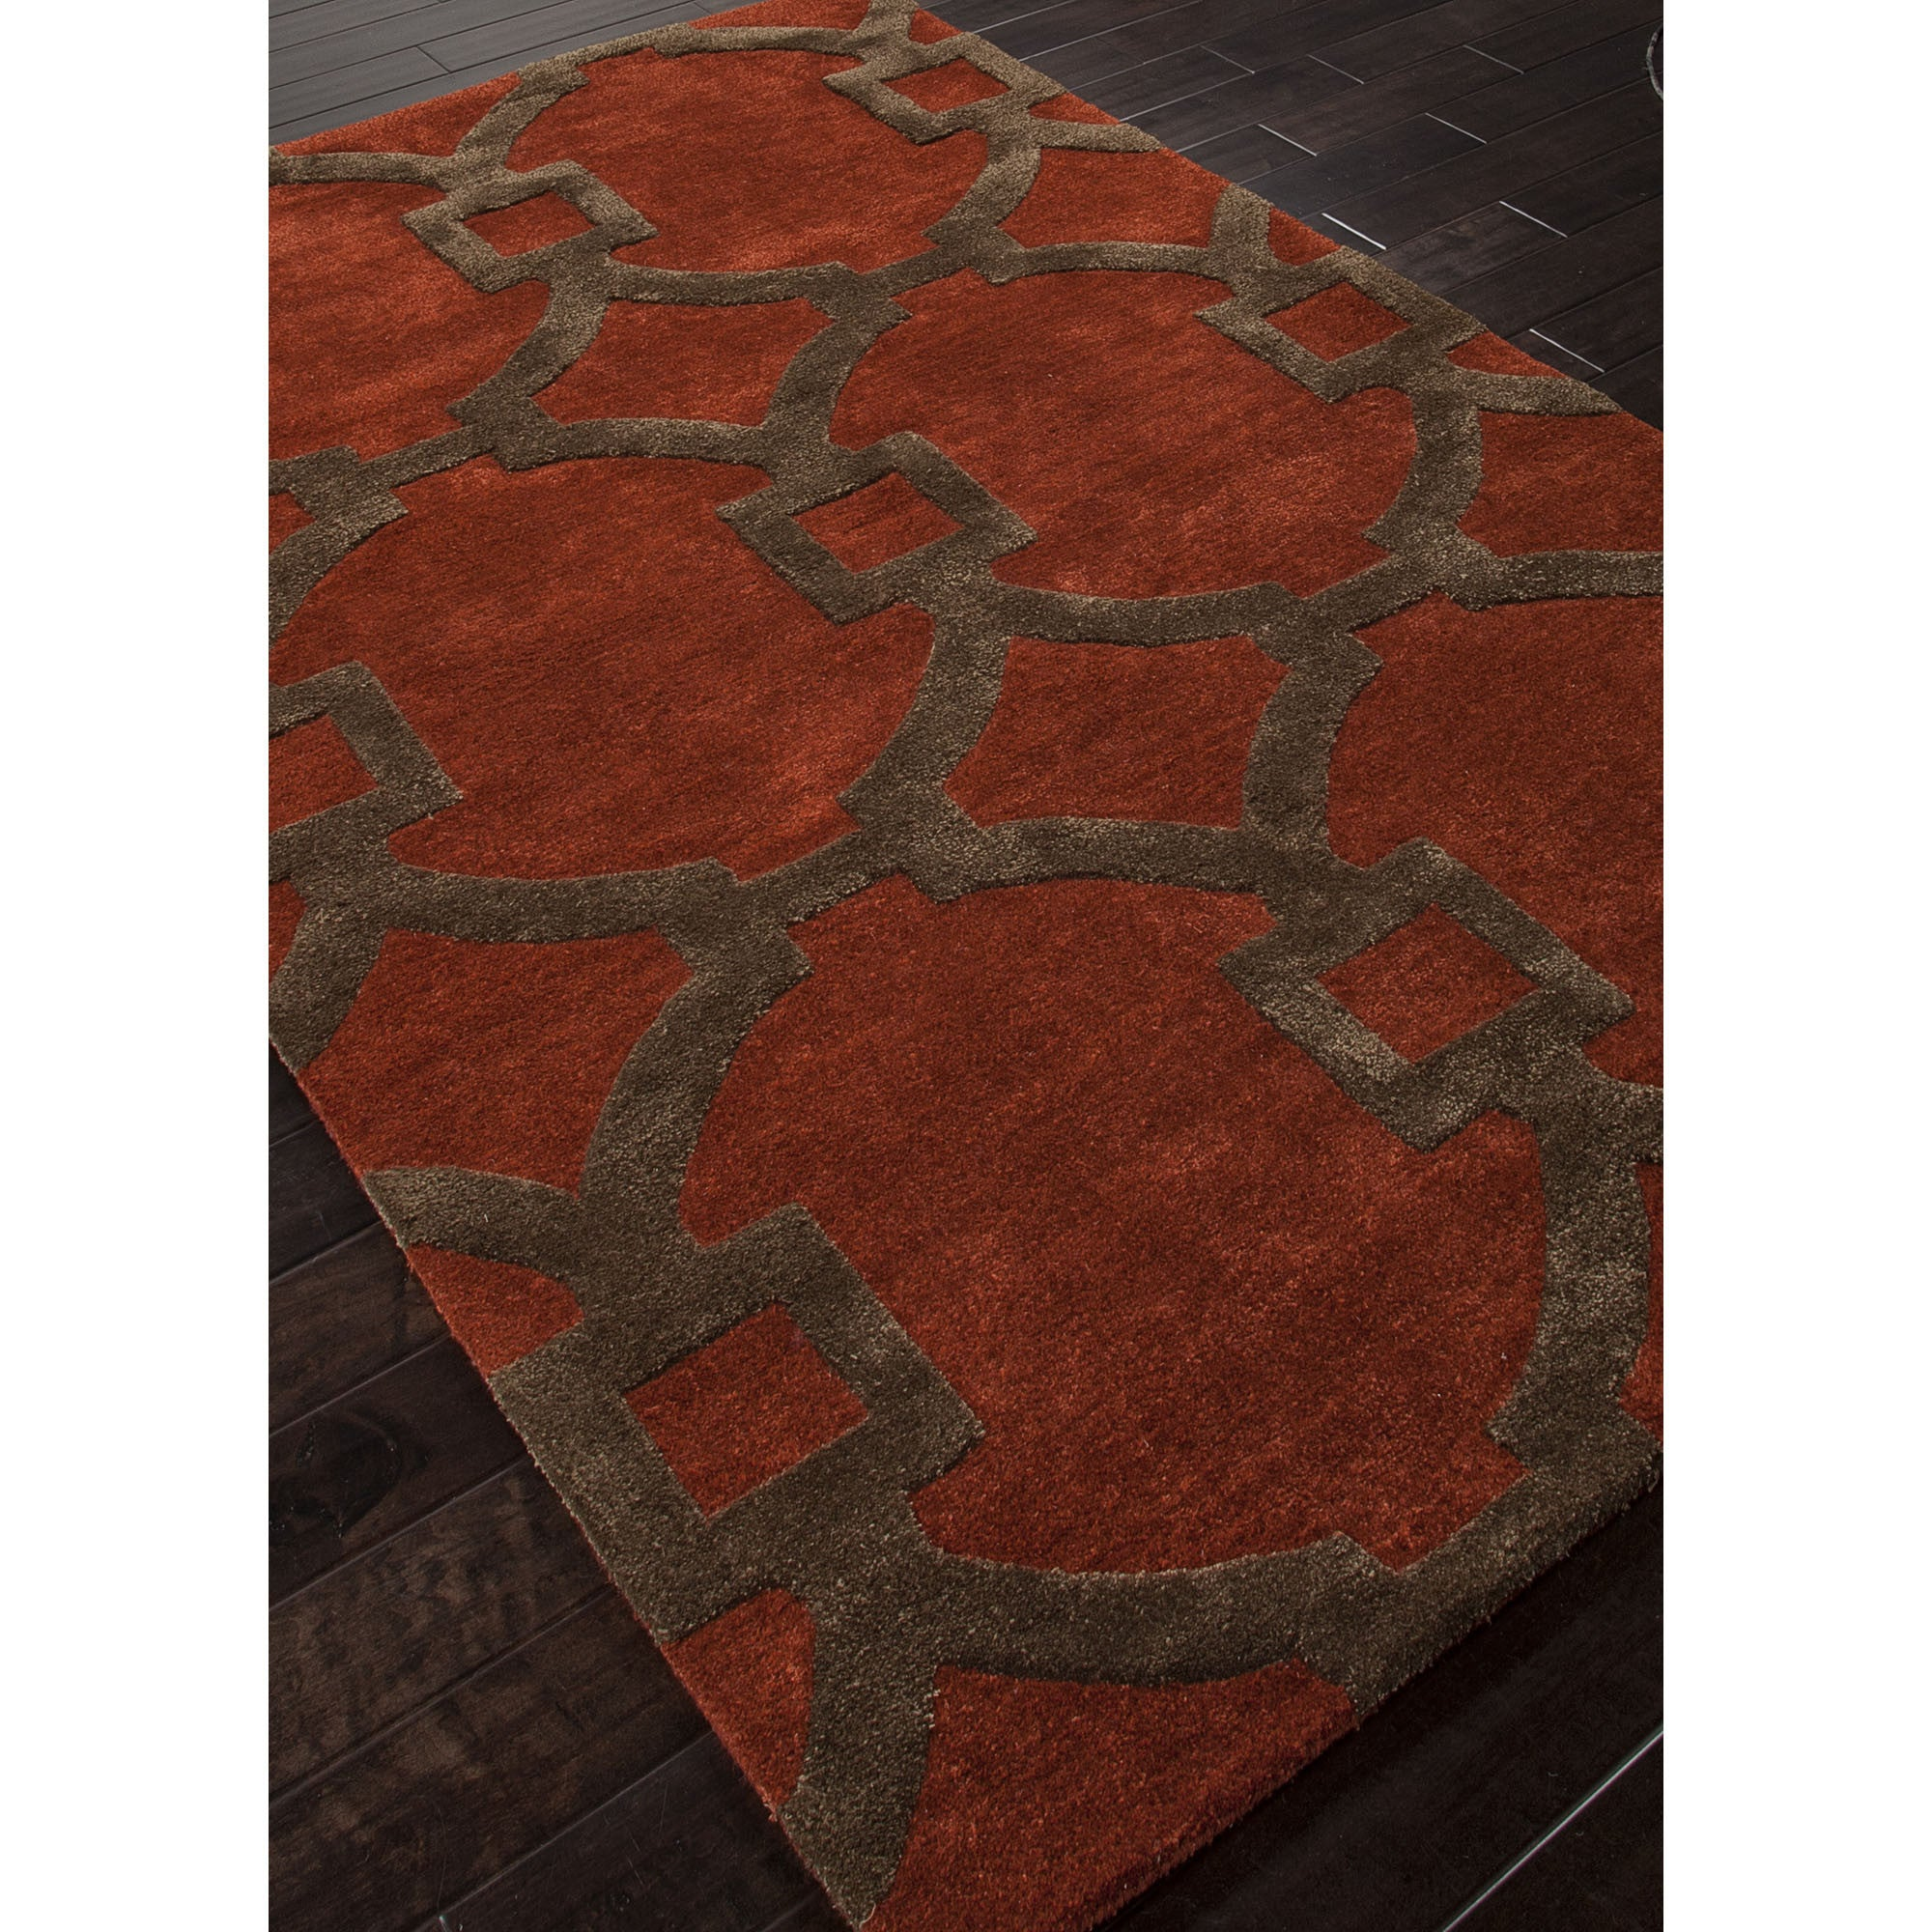 Jaipur rugs modern geometric pattern red brown wool and for Modern wool area rugs